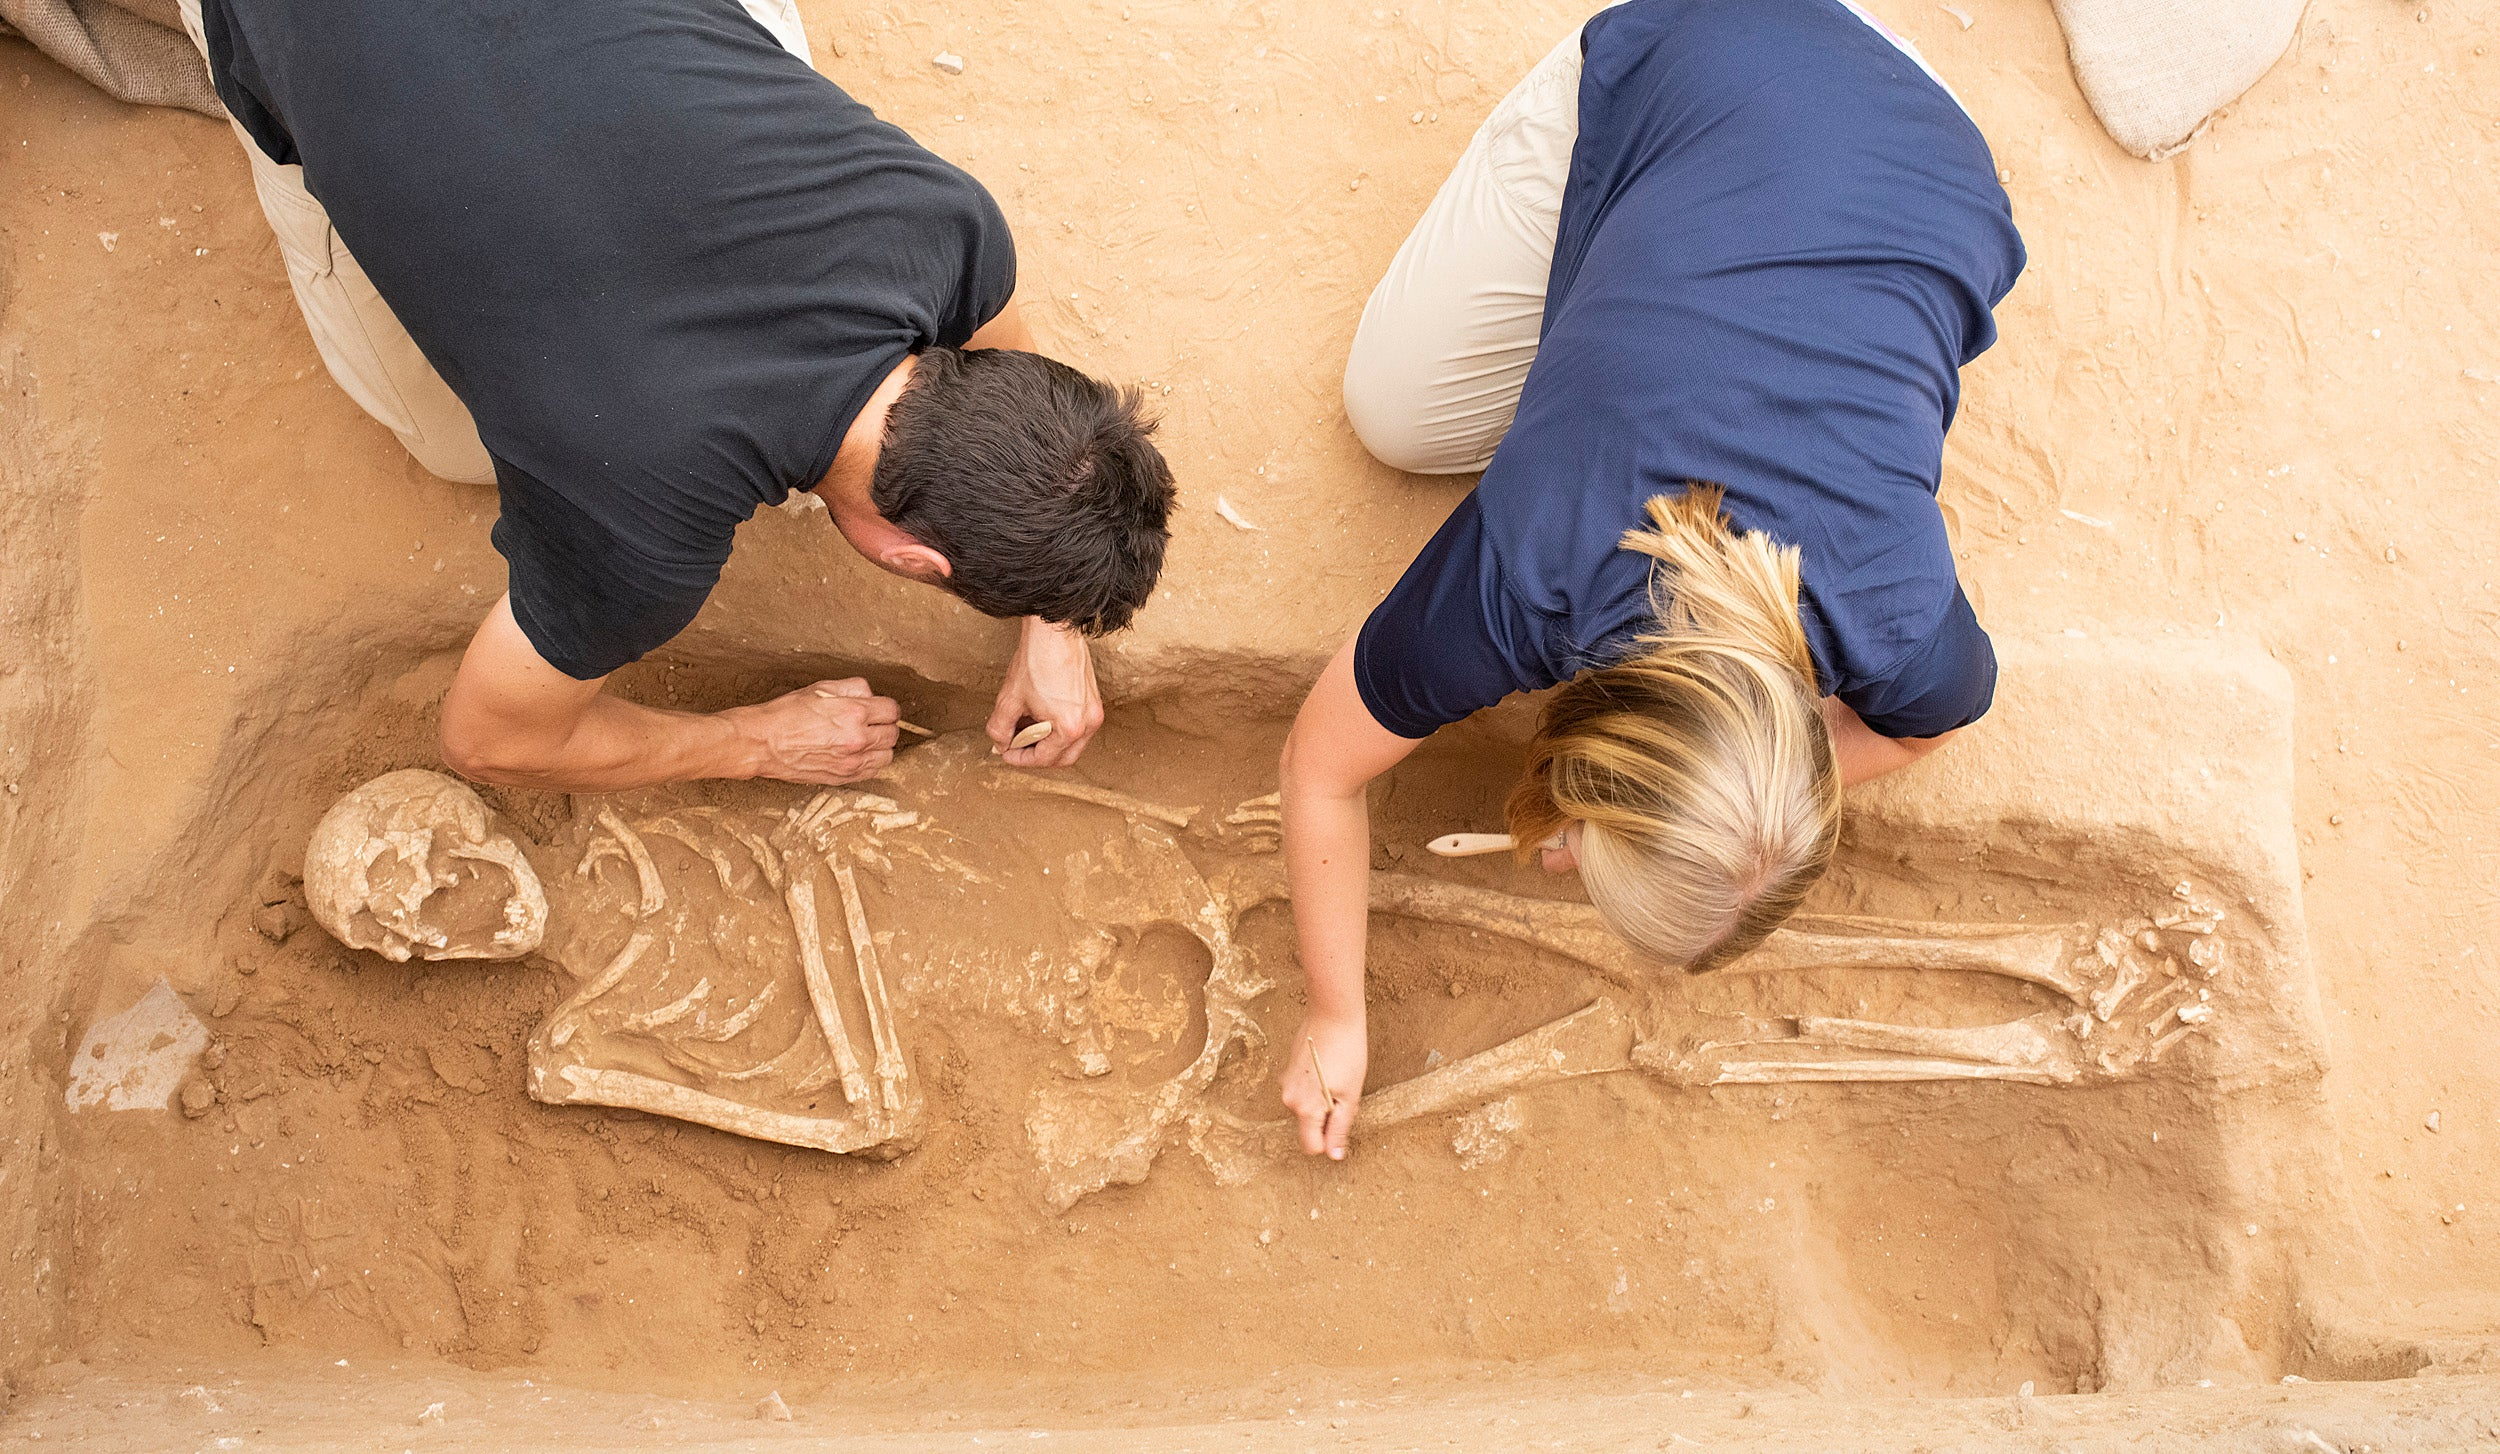 Archeologists excavating a skeleton